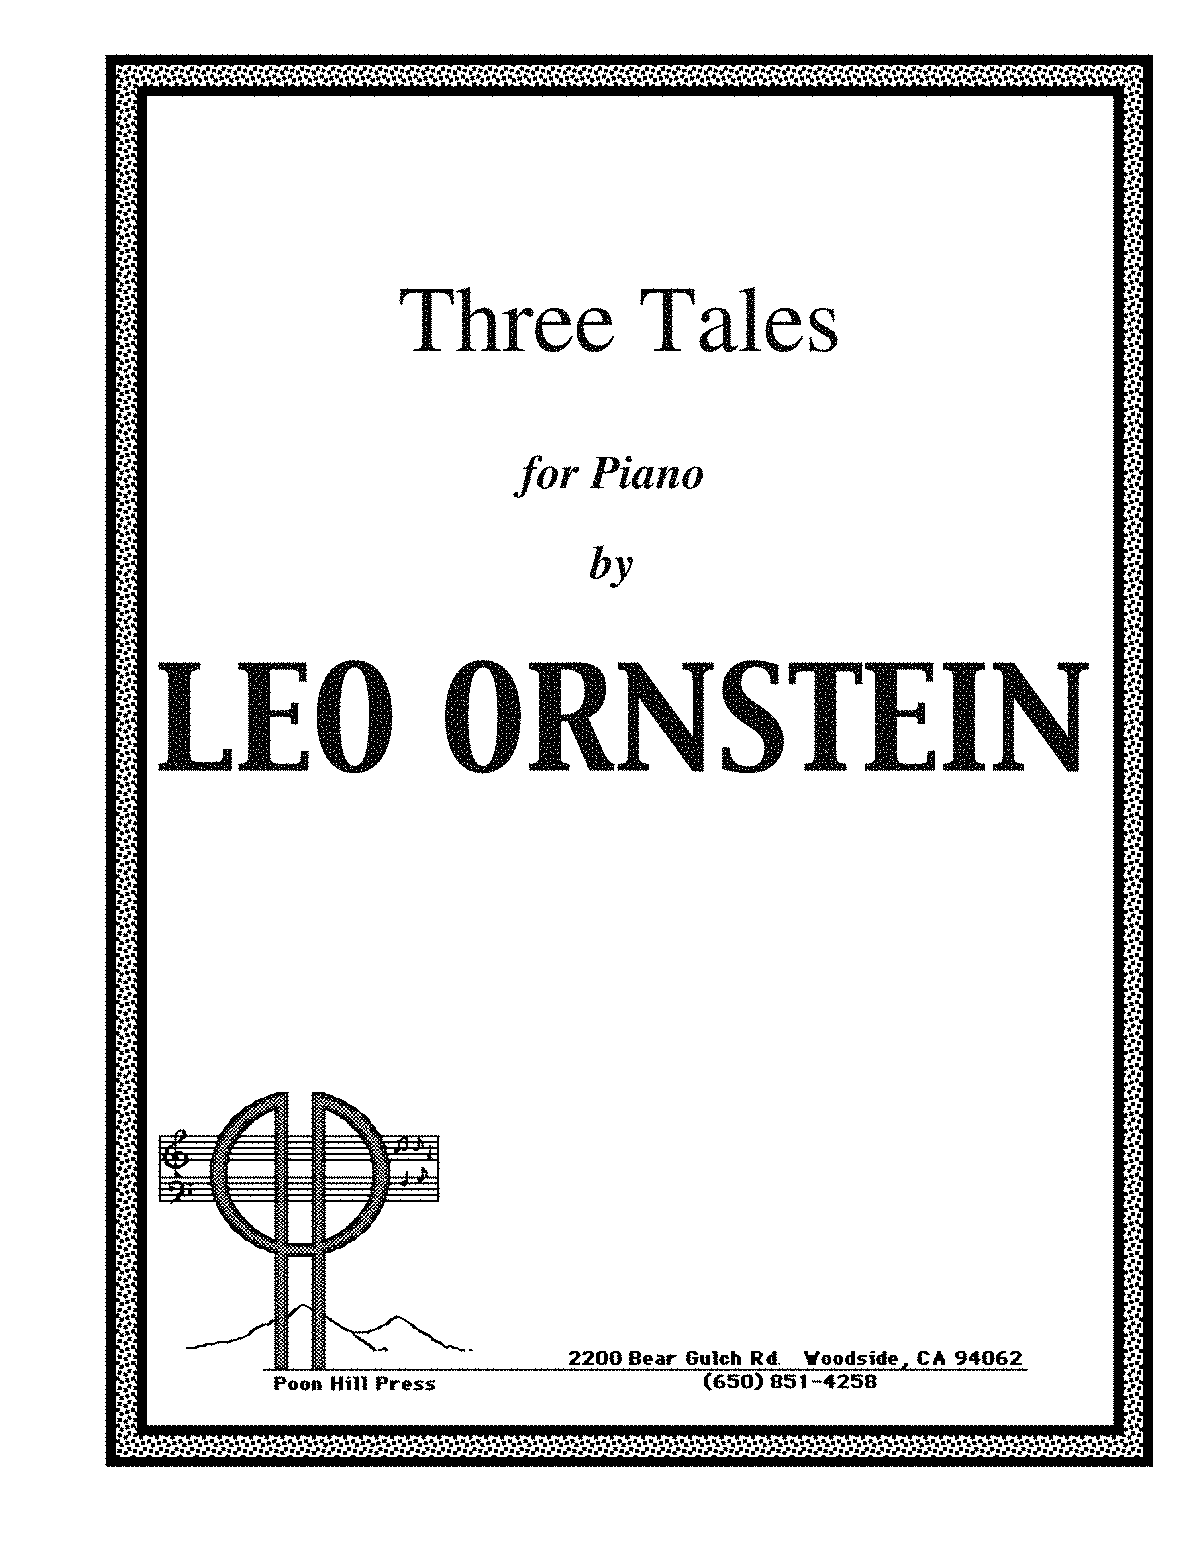 S111a - Three Tales.pdf